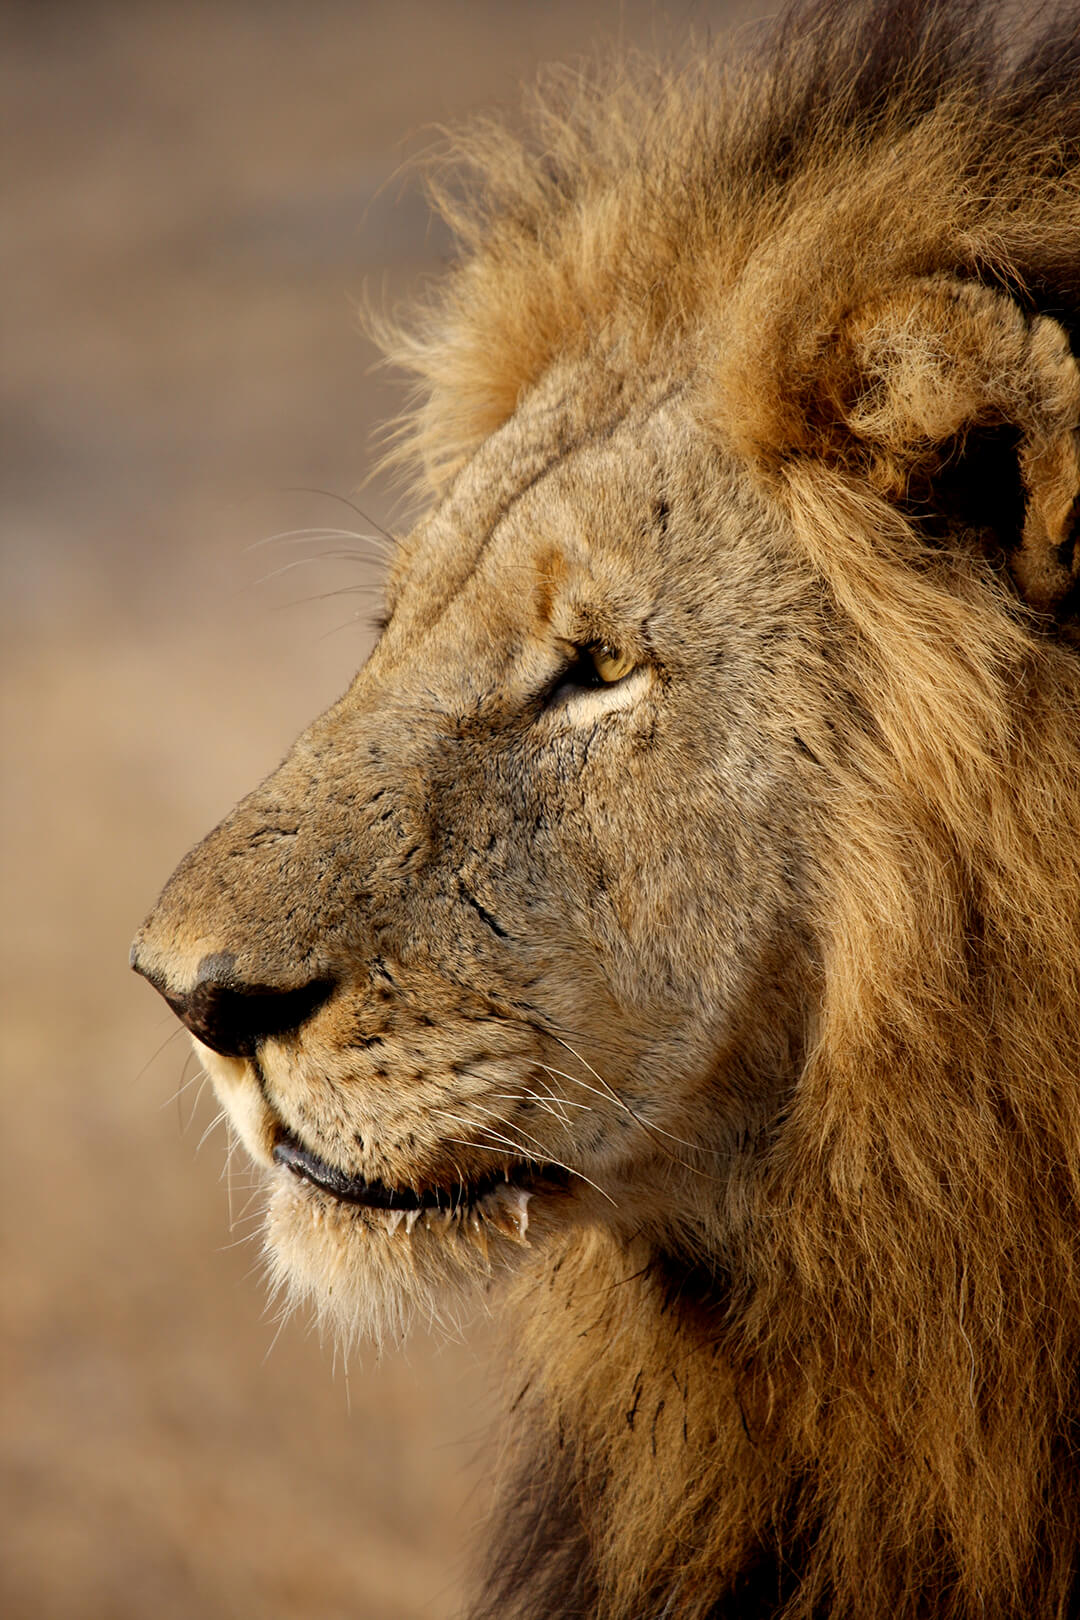 Lion profile - photograph by Malcolm Bowling